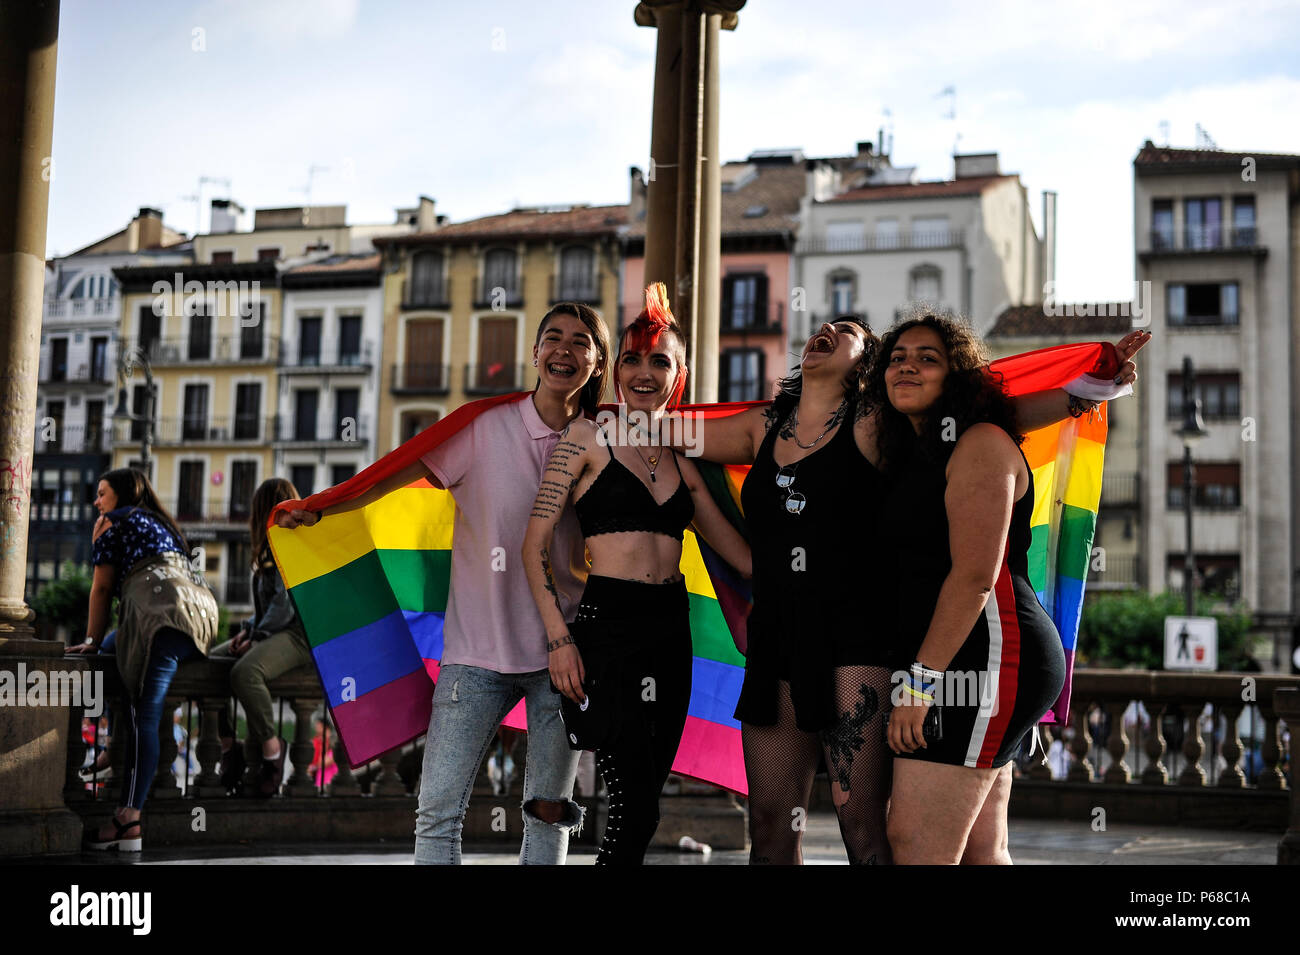 Pamplona, Spain. 28th June, 2018. Participants in the gay pride parade waves flags as thousands of people rally for LGBTQ+ rights in Pamplona, Spain on June 28, 2018 to mark the start of Pride weekend in the city. Credit: Mikel Cia Da Riva/Alamy Live News - Stock Image